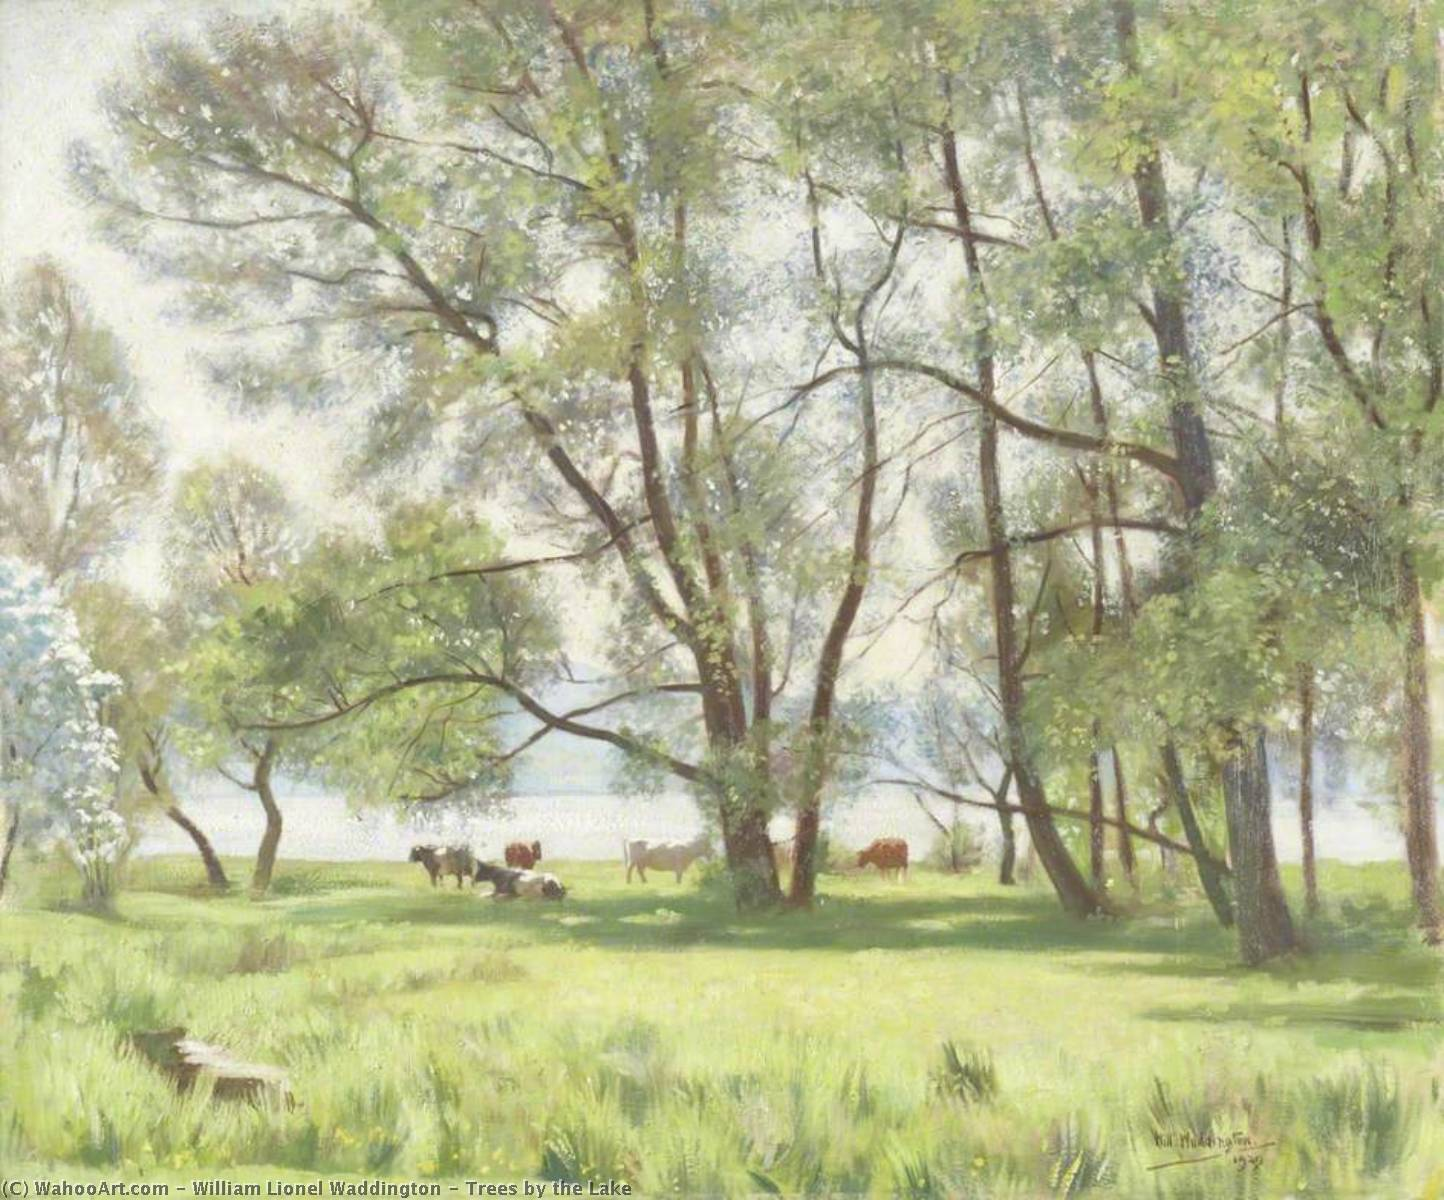 Trees by the Lake, Oil On Canvas by William Lionel Waddington